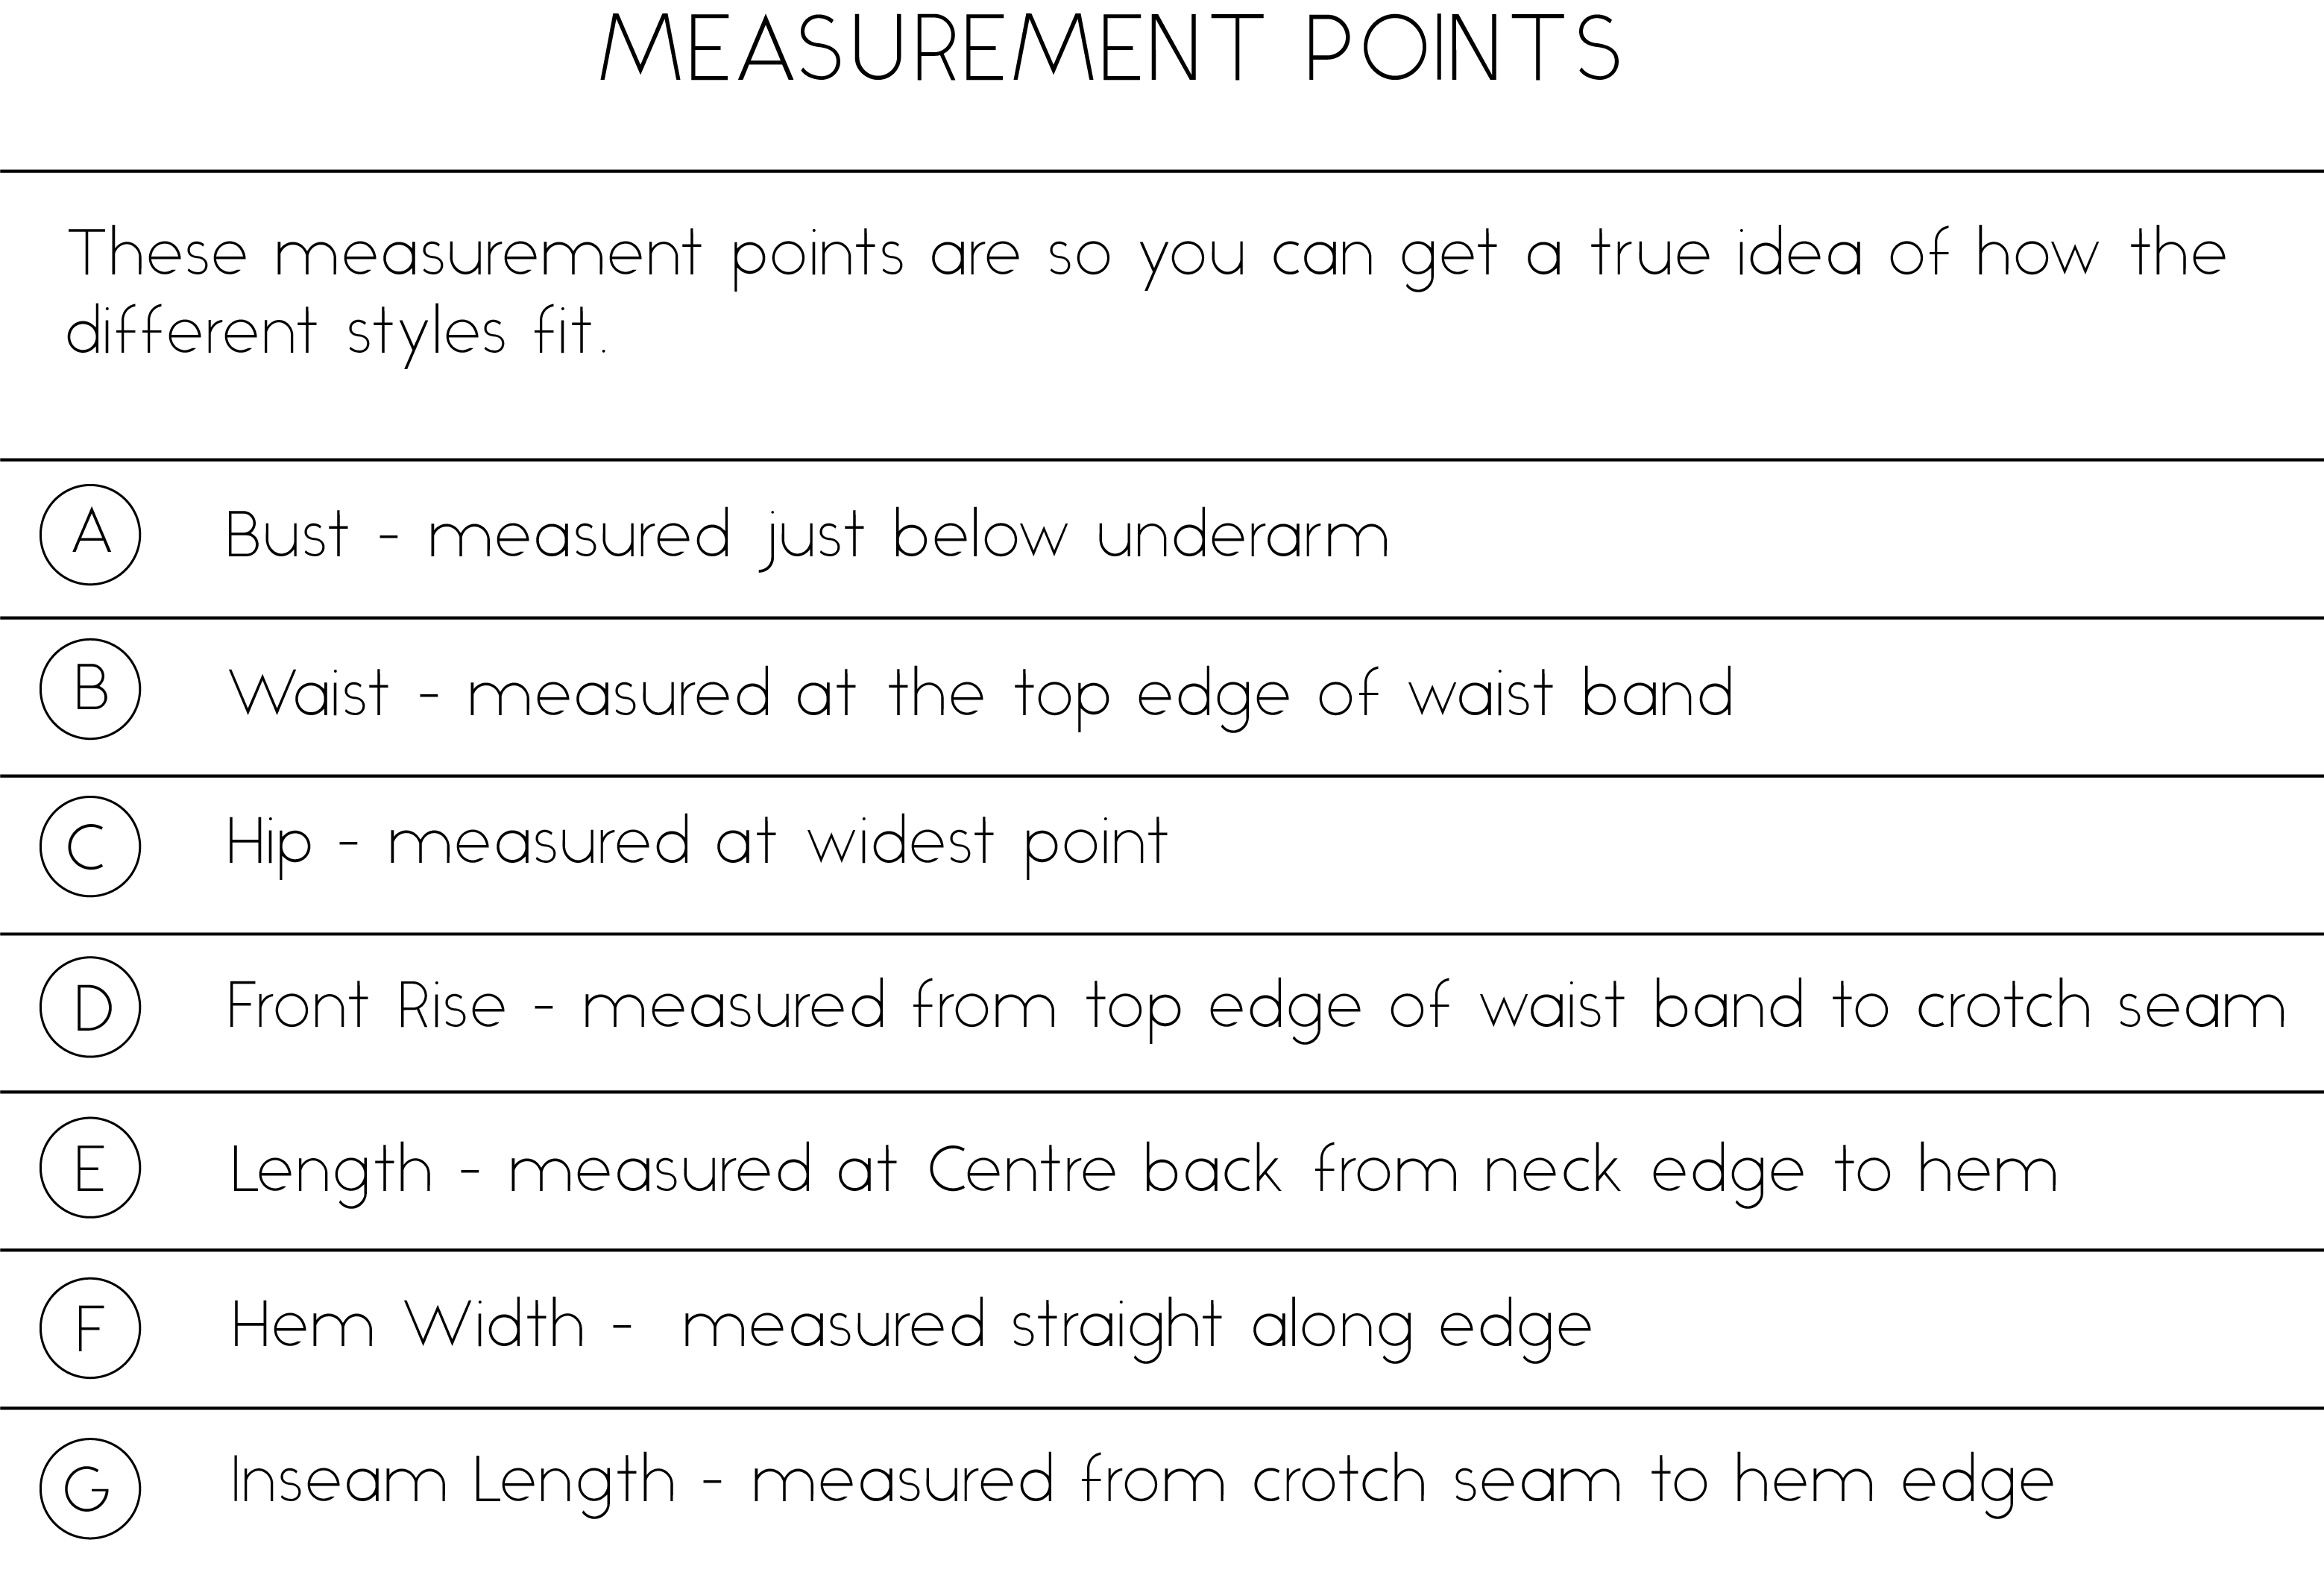 How to measure the various measurement points on a garment